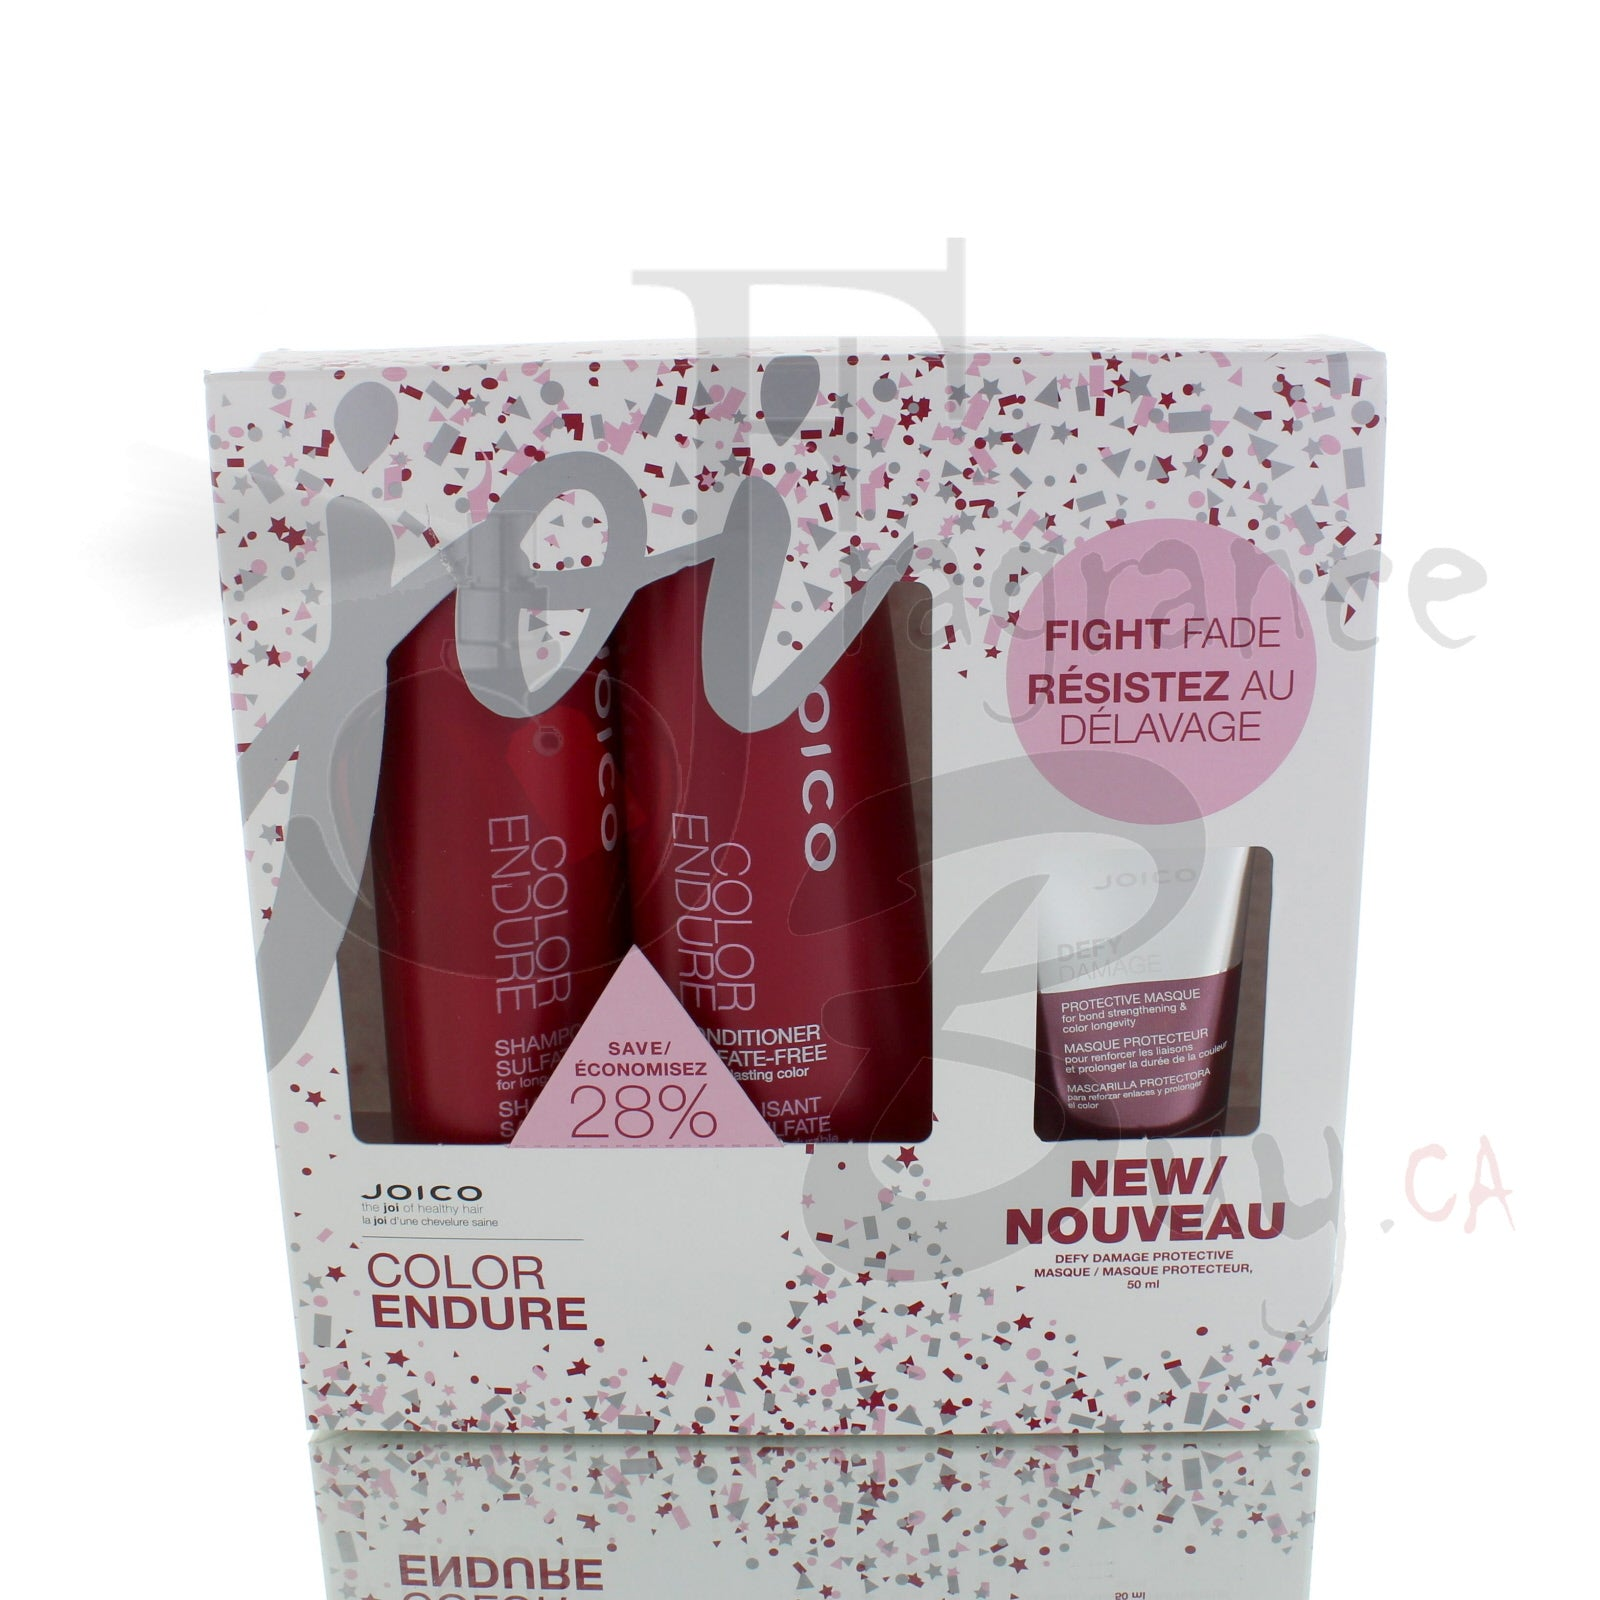 Joico Color Endure Ultimate Shampoo/Conditioner Kit